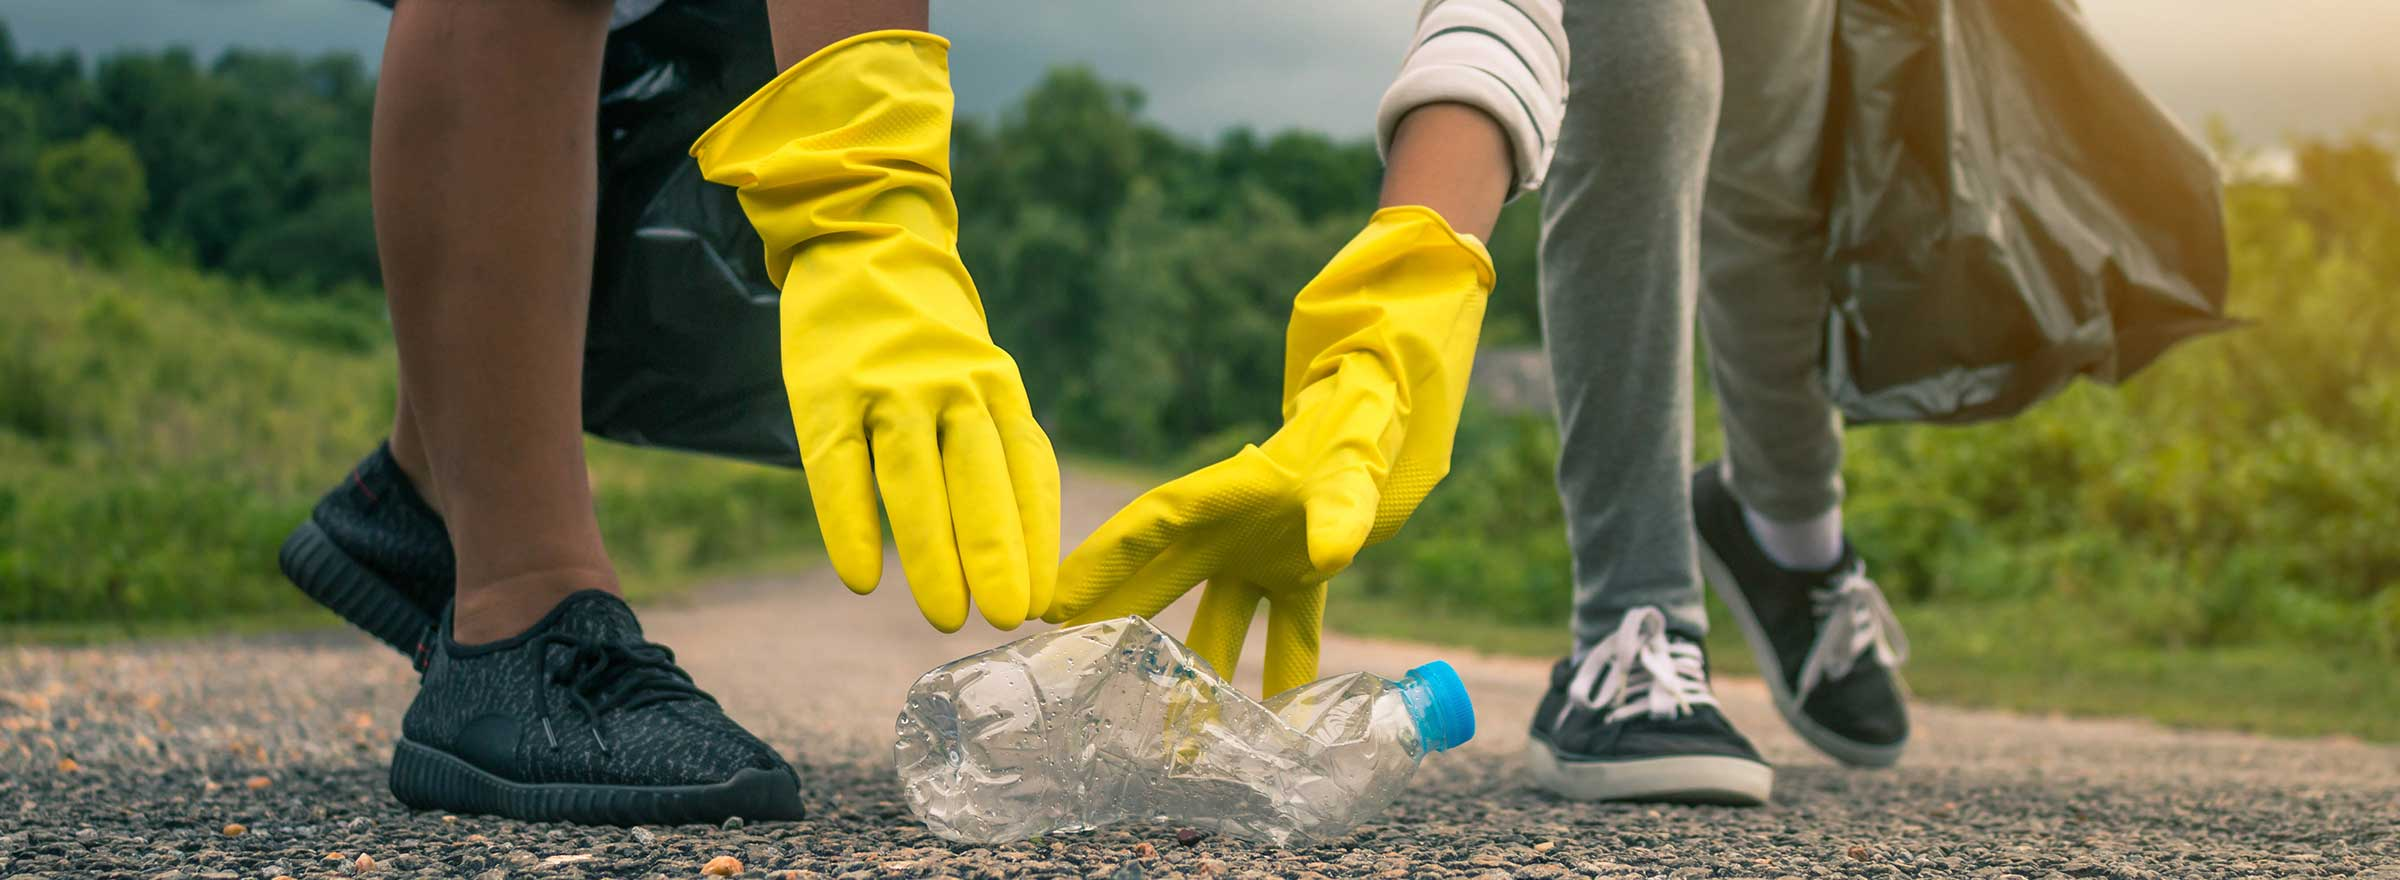 hands of two people with yellow gloves and carrying trash bags reach to pick up a crushed plastic bottle on the ground